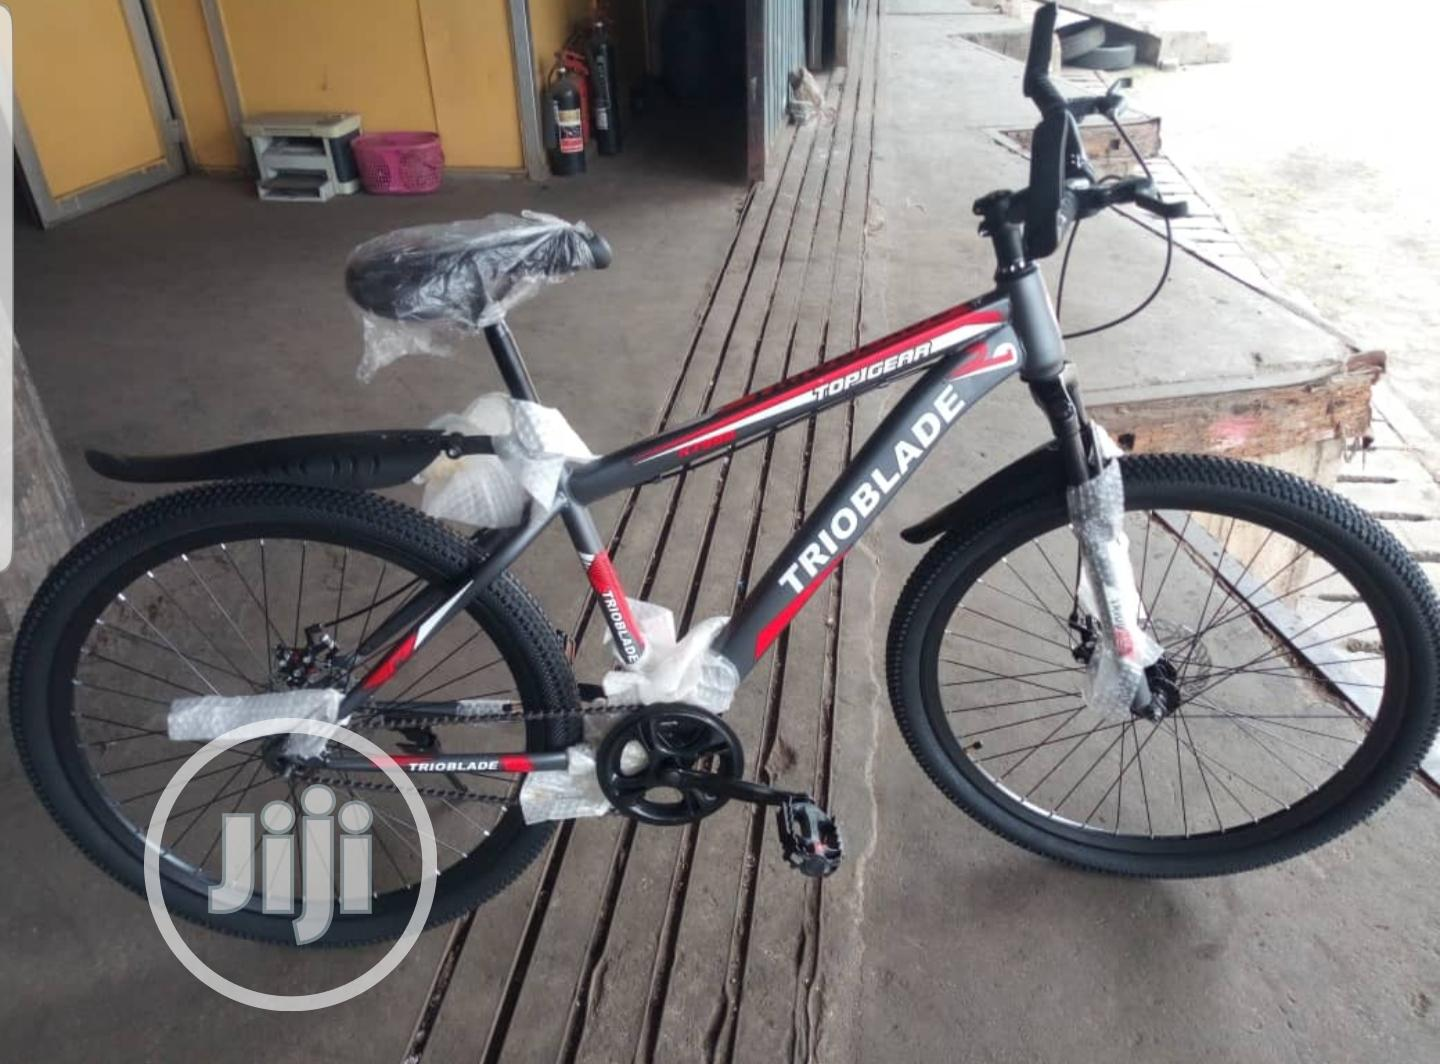 Trioblade Bicycle With Single Speed for the Tall and Big